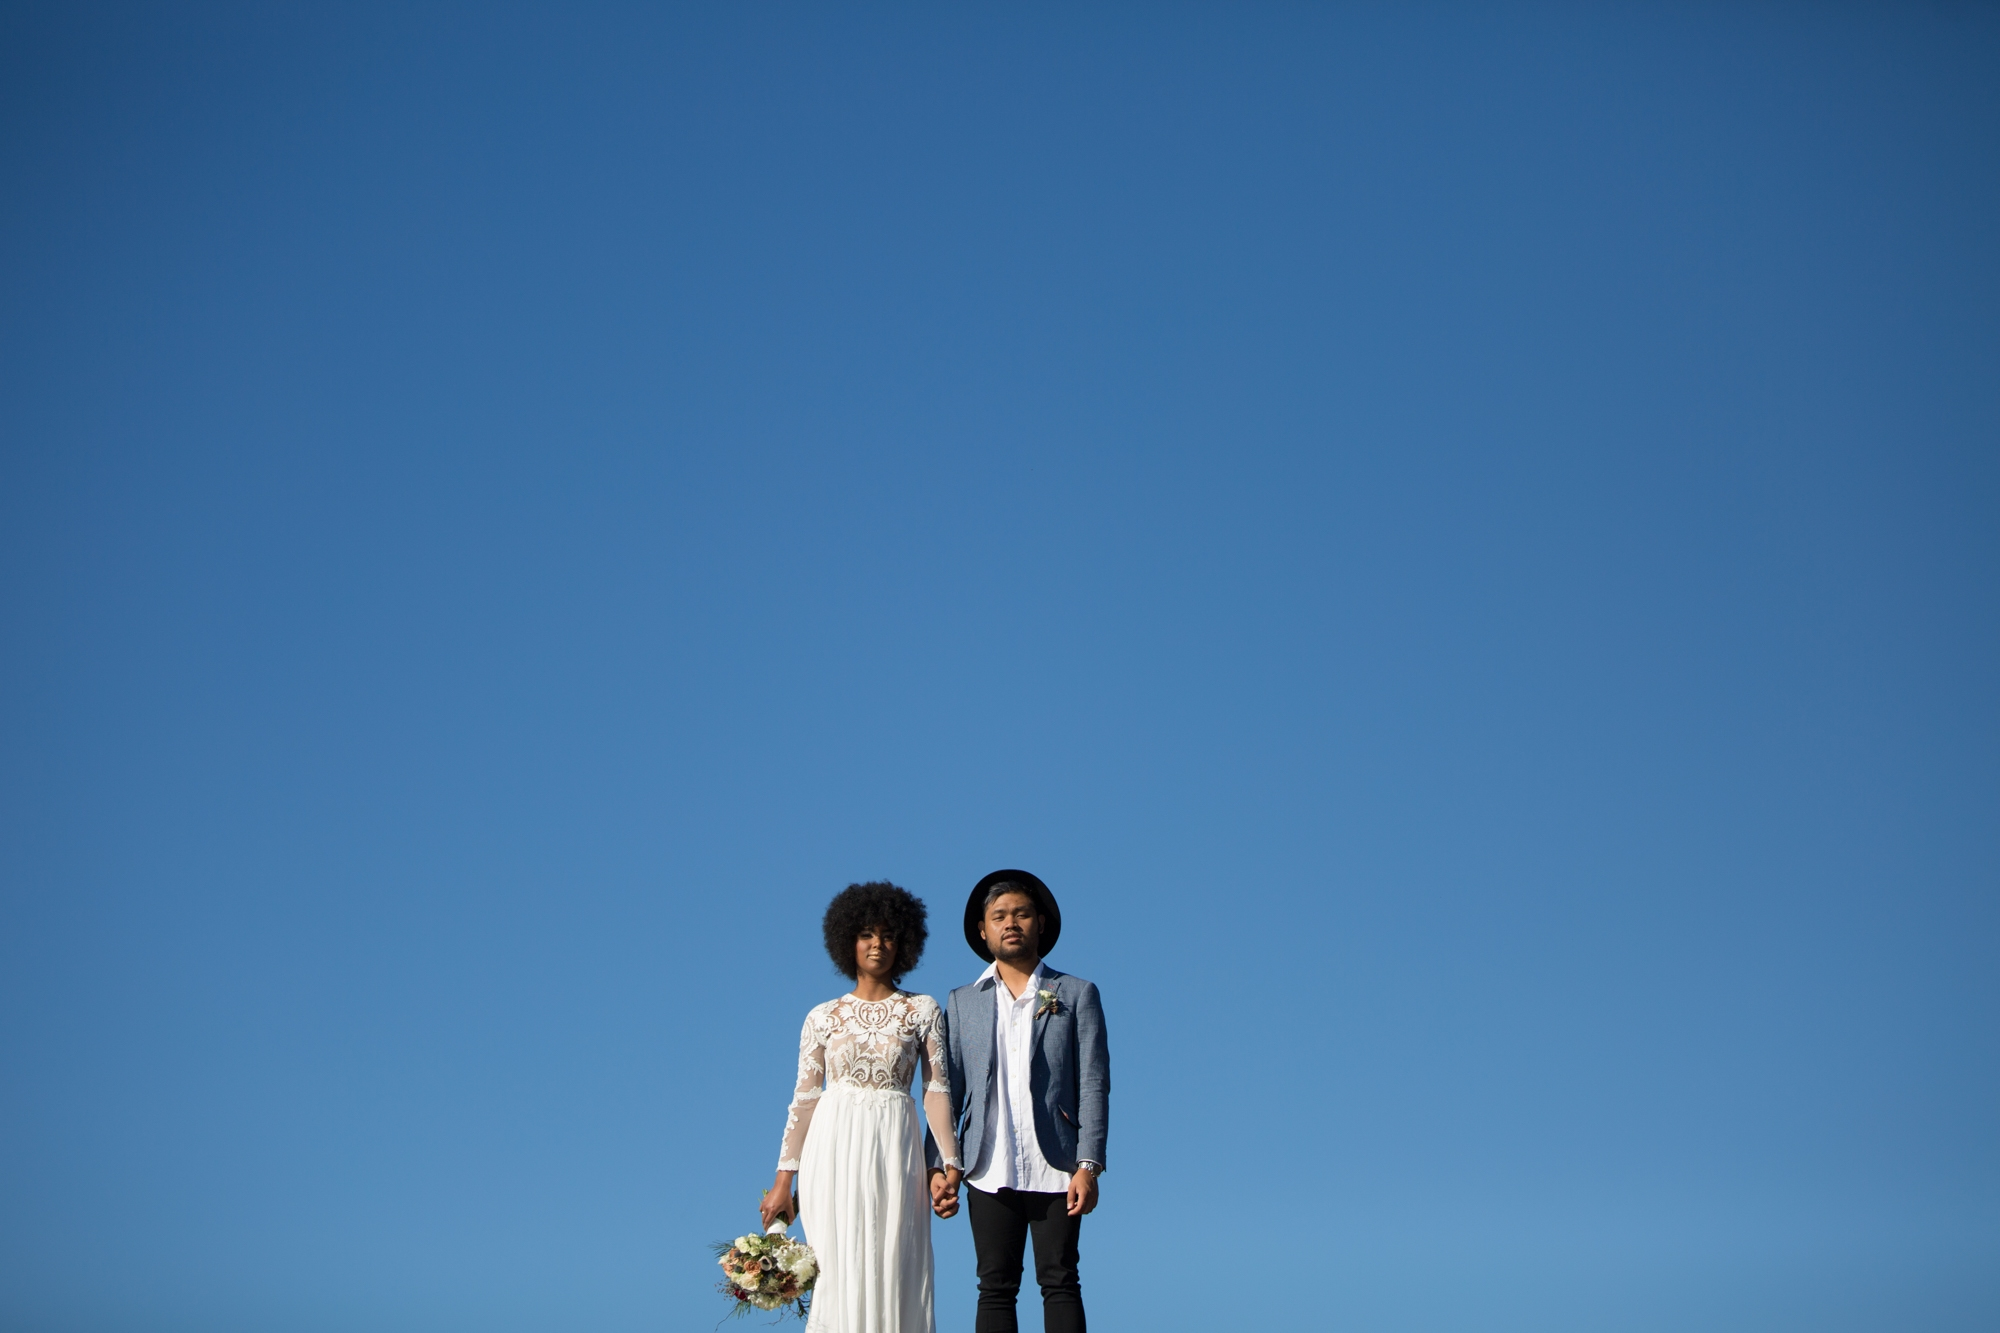 South african bride with afro, groom with hat